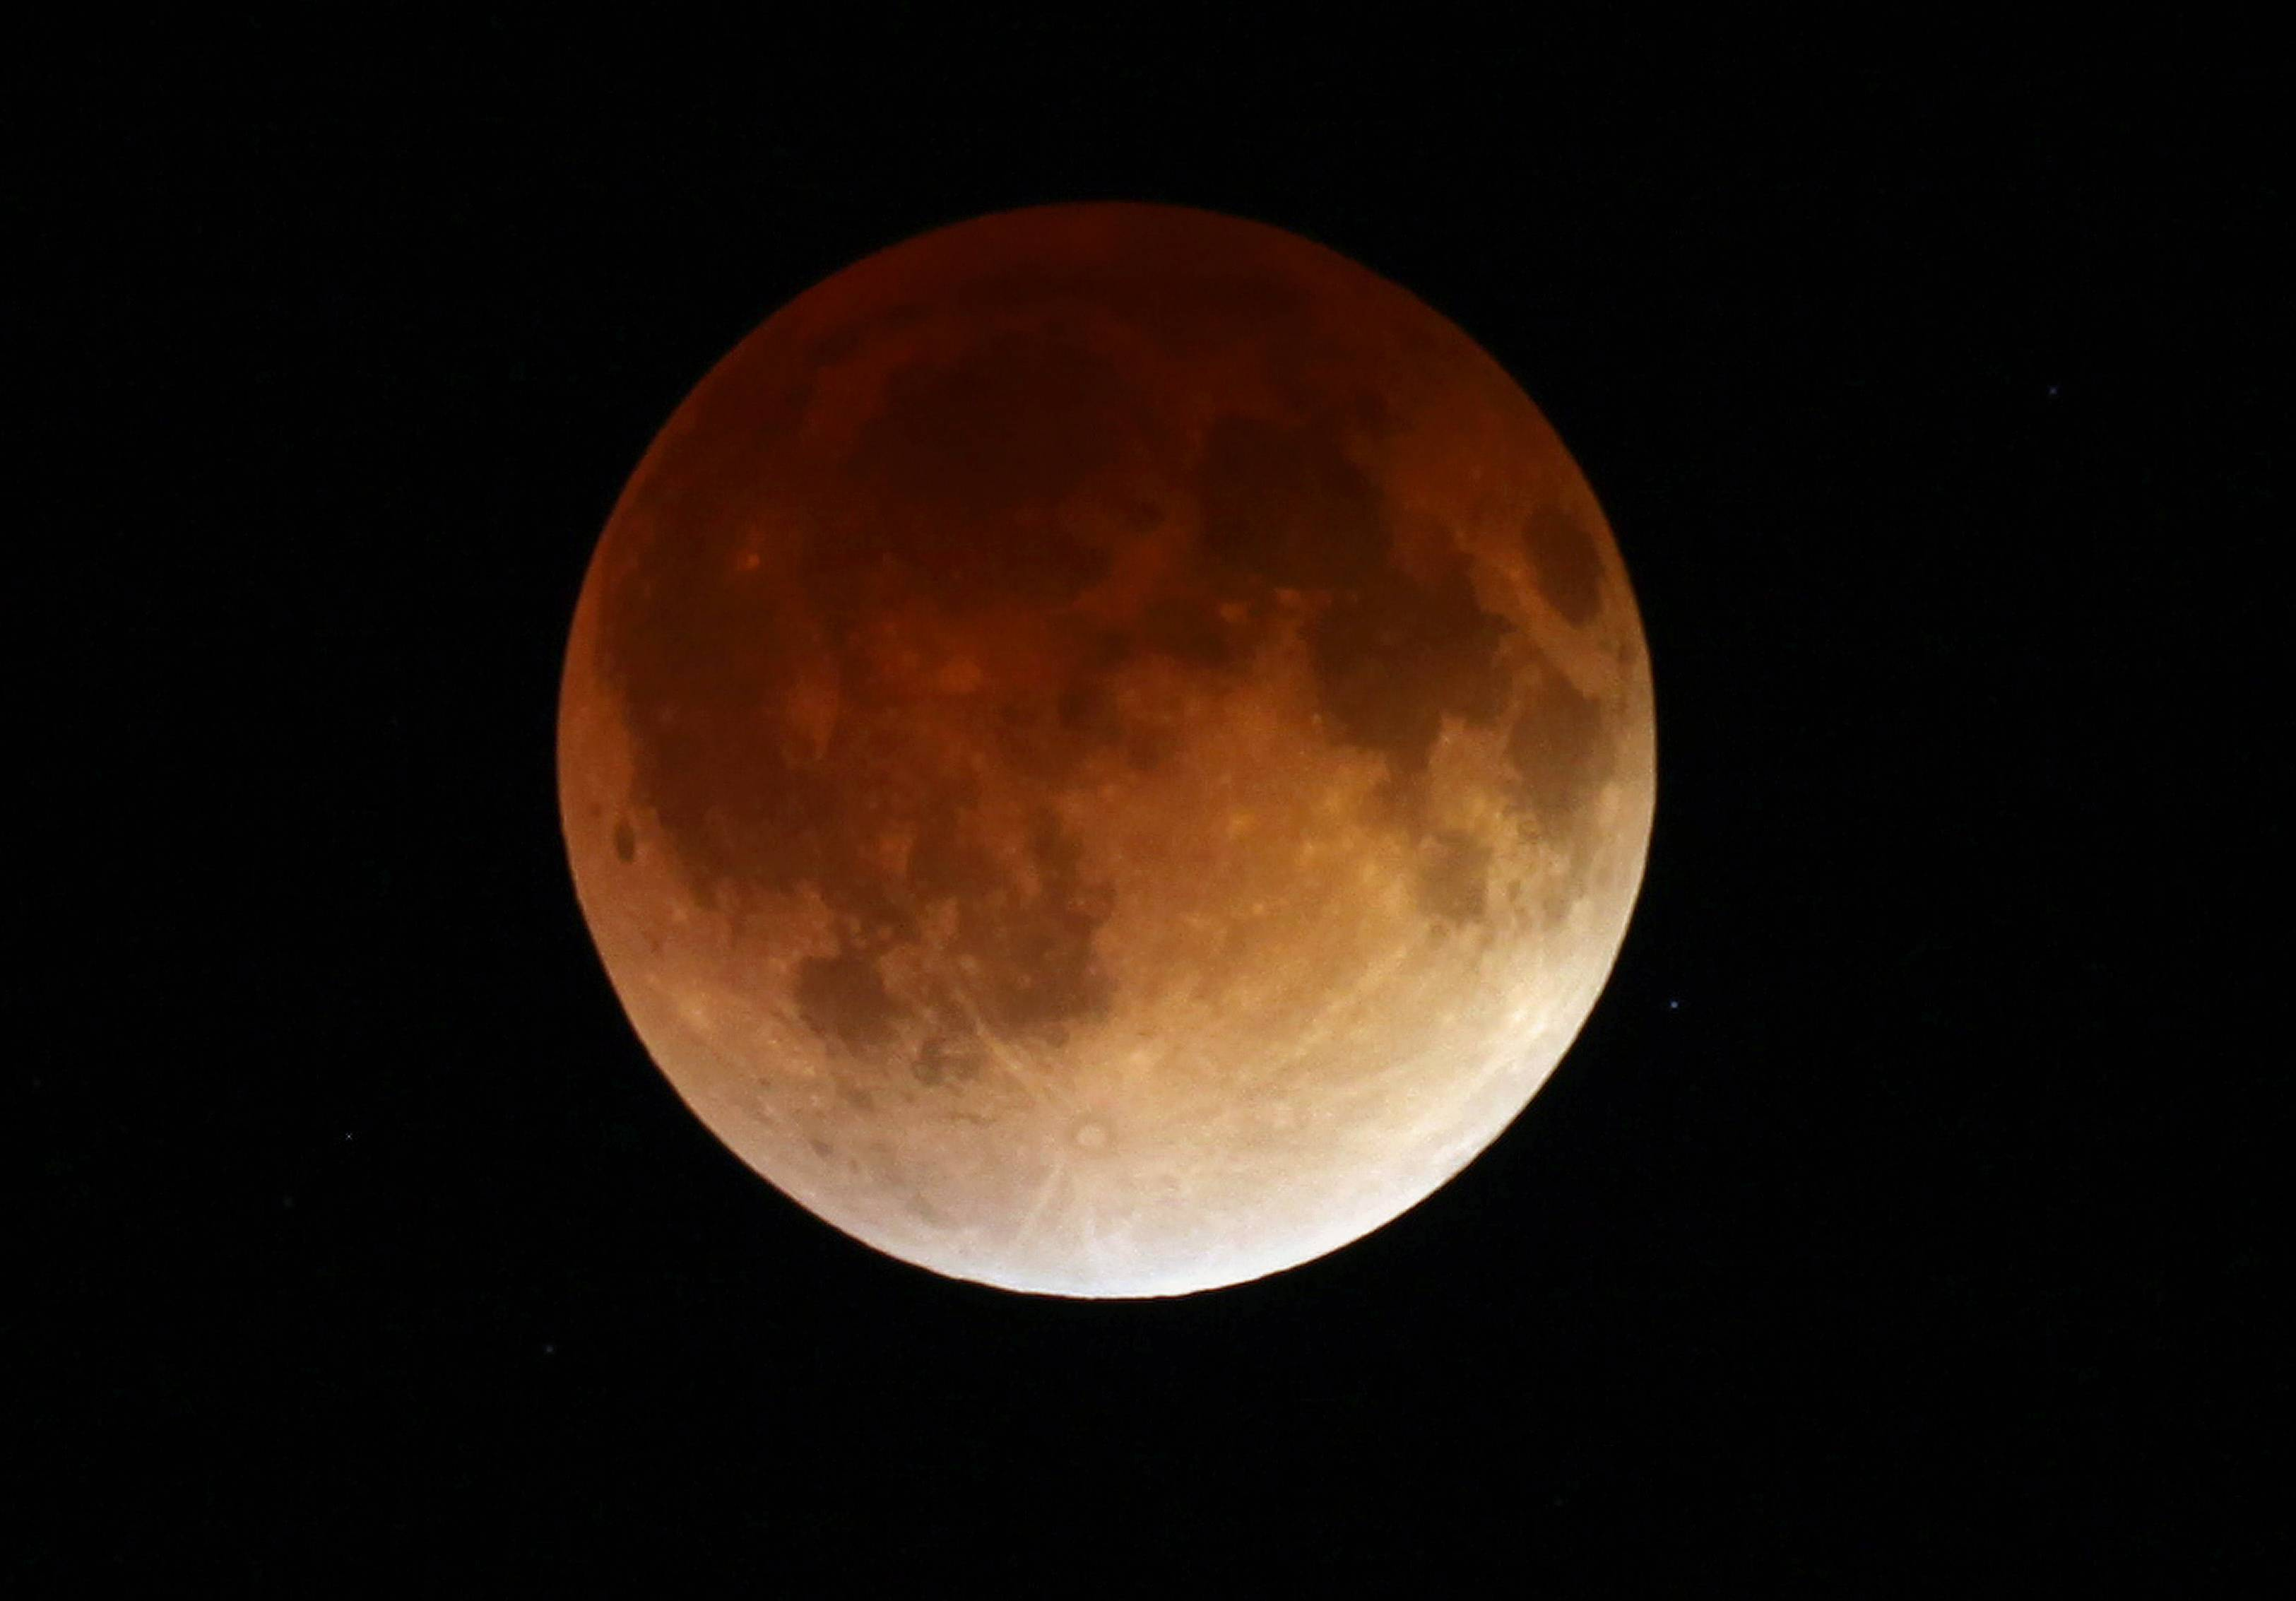 The moon glows a red hue during a total lunar eclipse Tuesday, April 15, 2014, as seen from the Milwaukee area. Tuesday's eclipse is the first of four total lunar eclipses that will take place between 2014 to 2015.